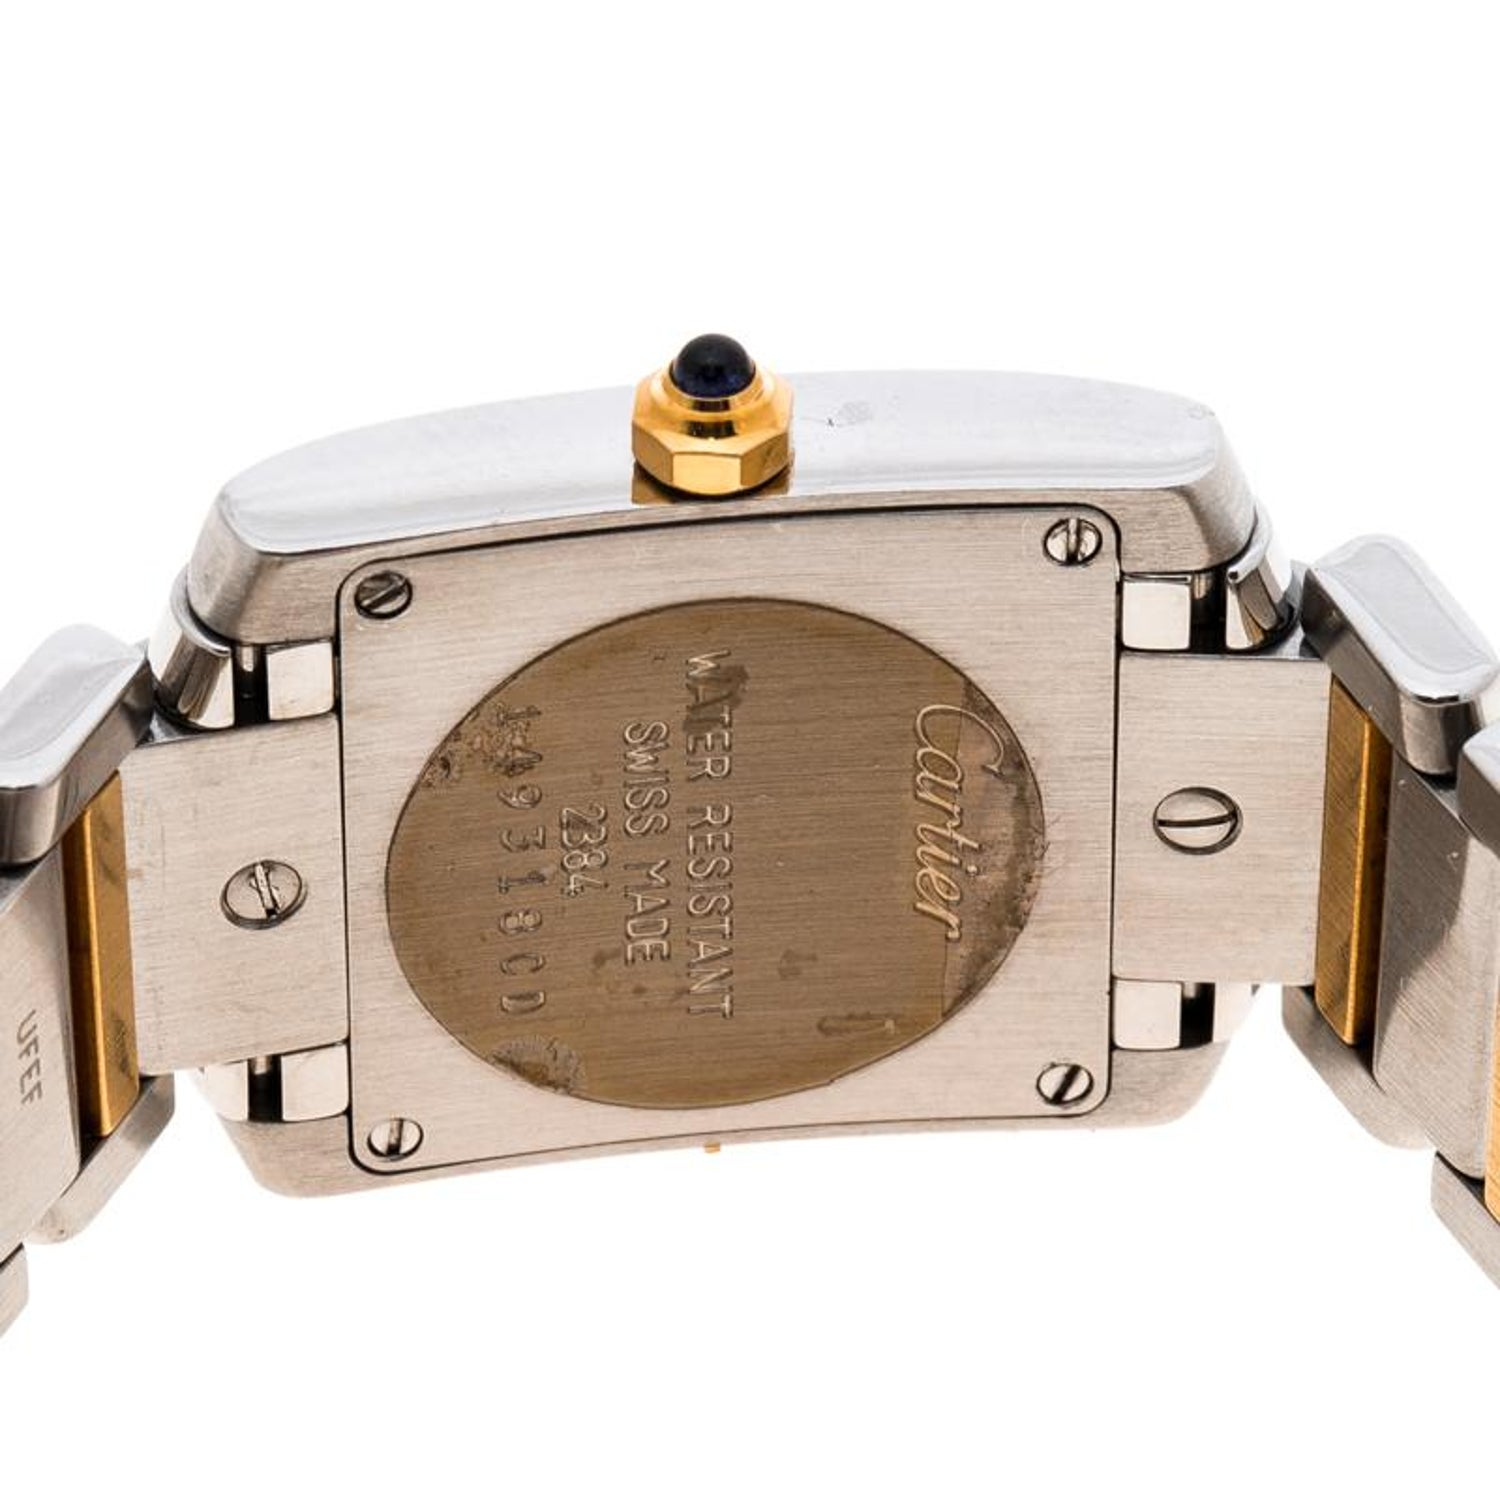 efce5804b1338 Cartier Ivory 18K Yellow Gold and Stainless Steel Tank Francaise 2384  Women's Wr at 1stdibs